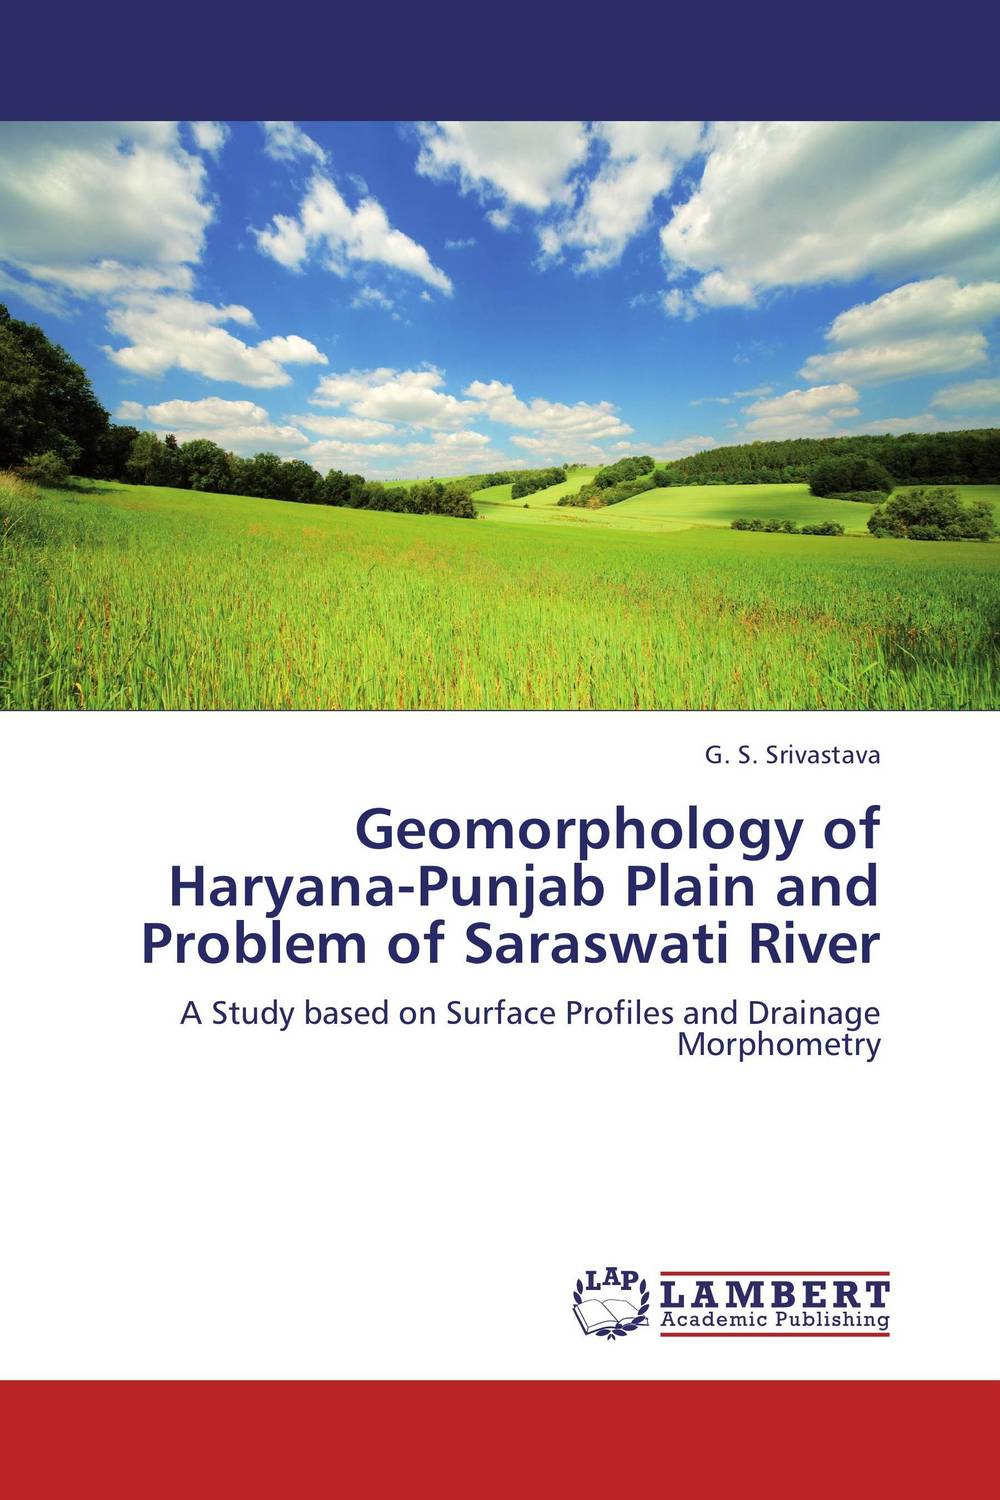 Geomorphology of Haryana-Punjab Plain and Problem of Saraswati River denon avr x1200w